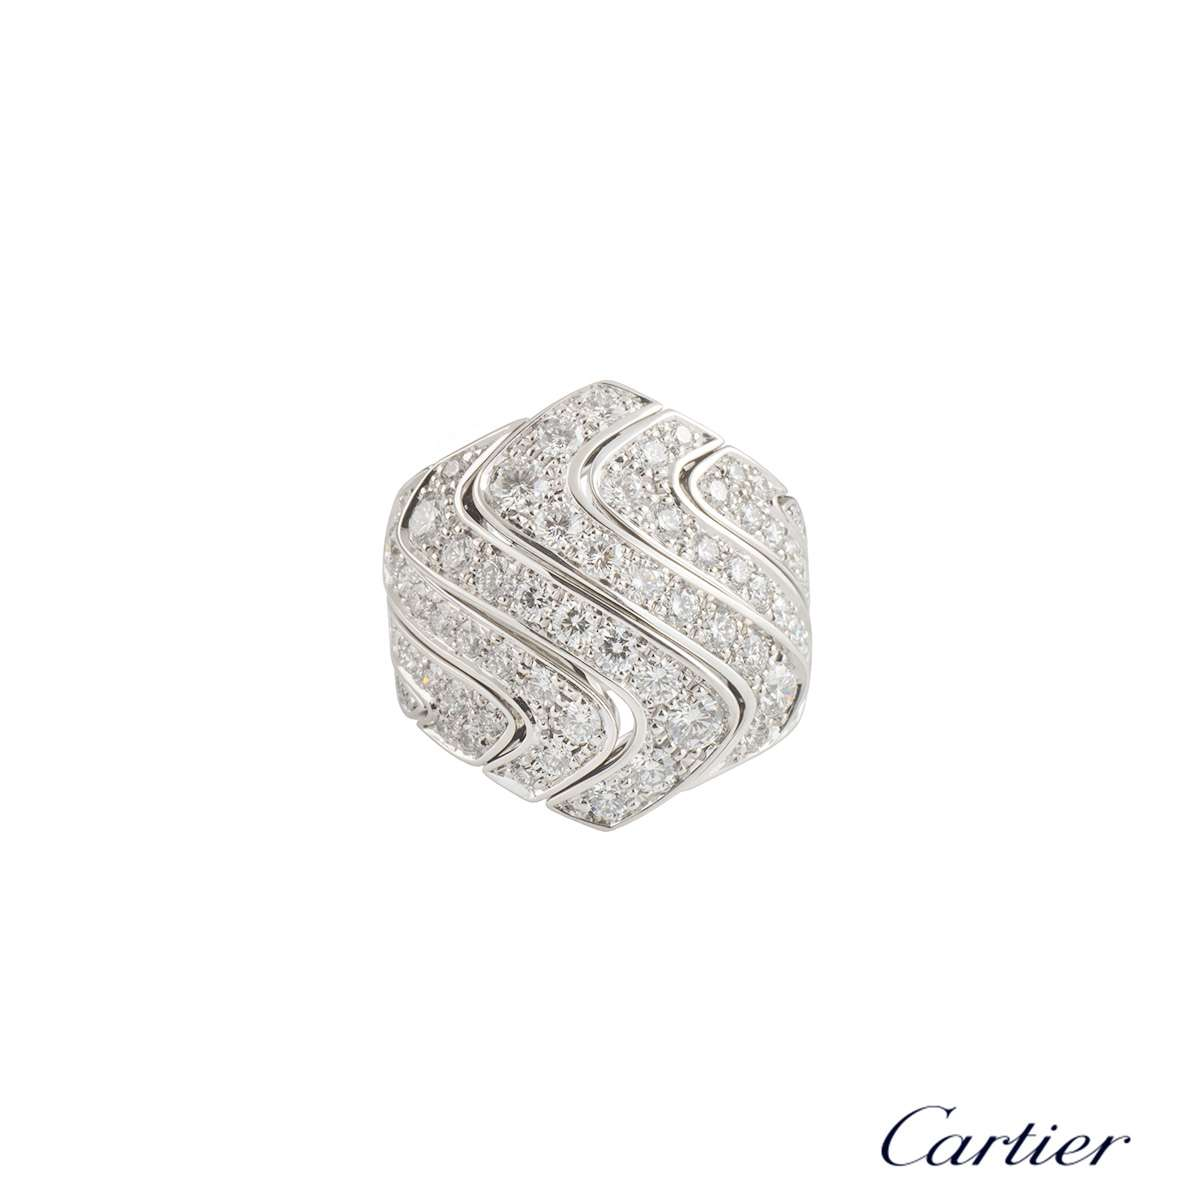 Cartier White Gold Diamond Dress Ring 2.47ct F+/VS+